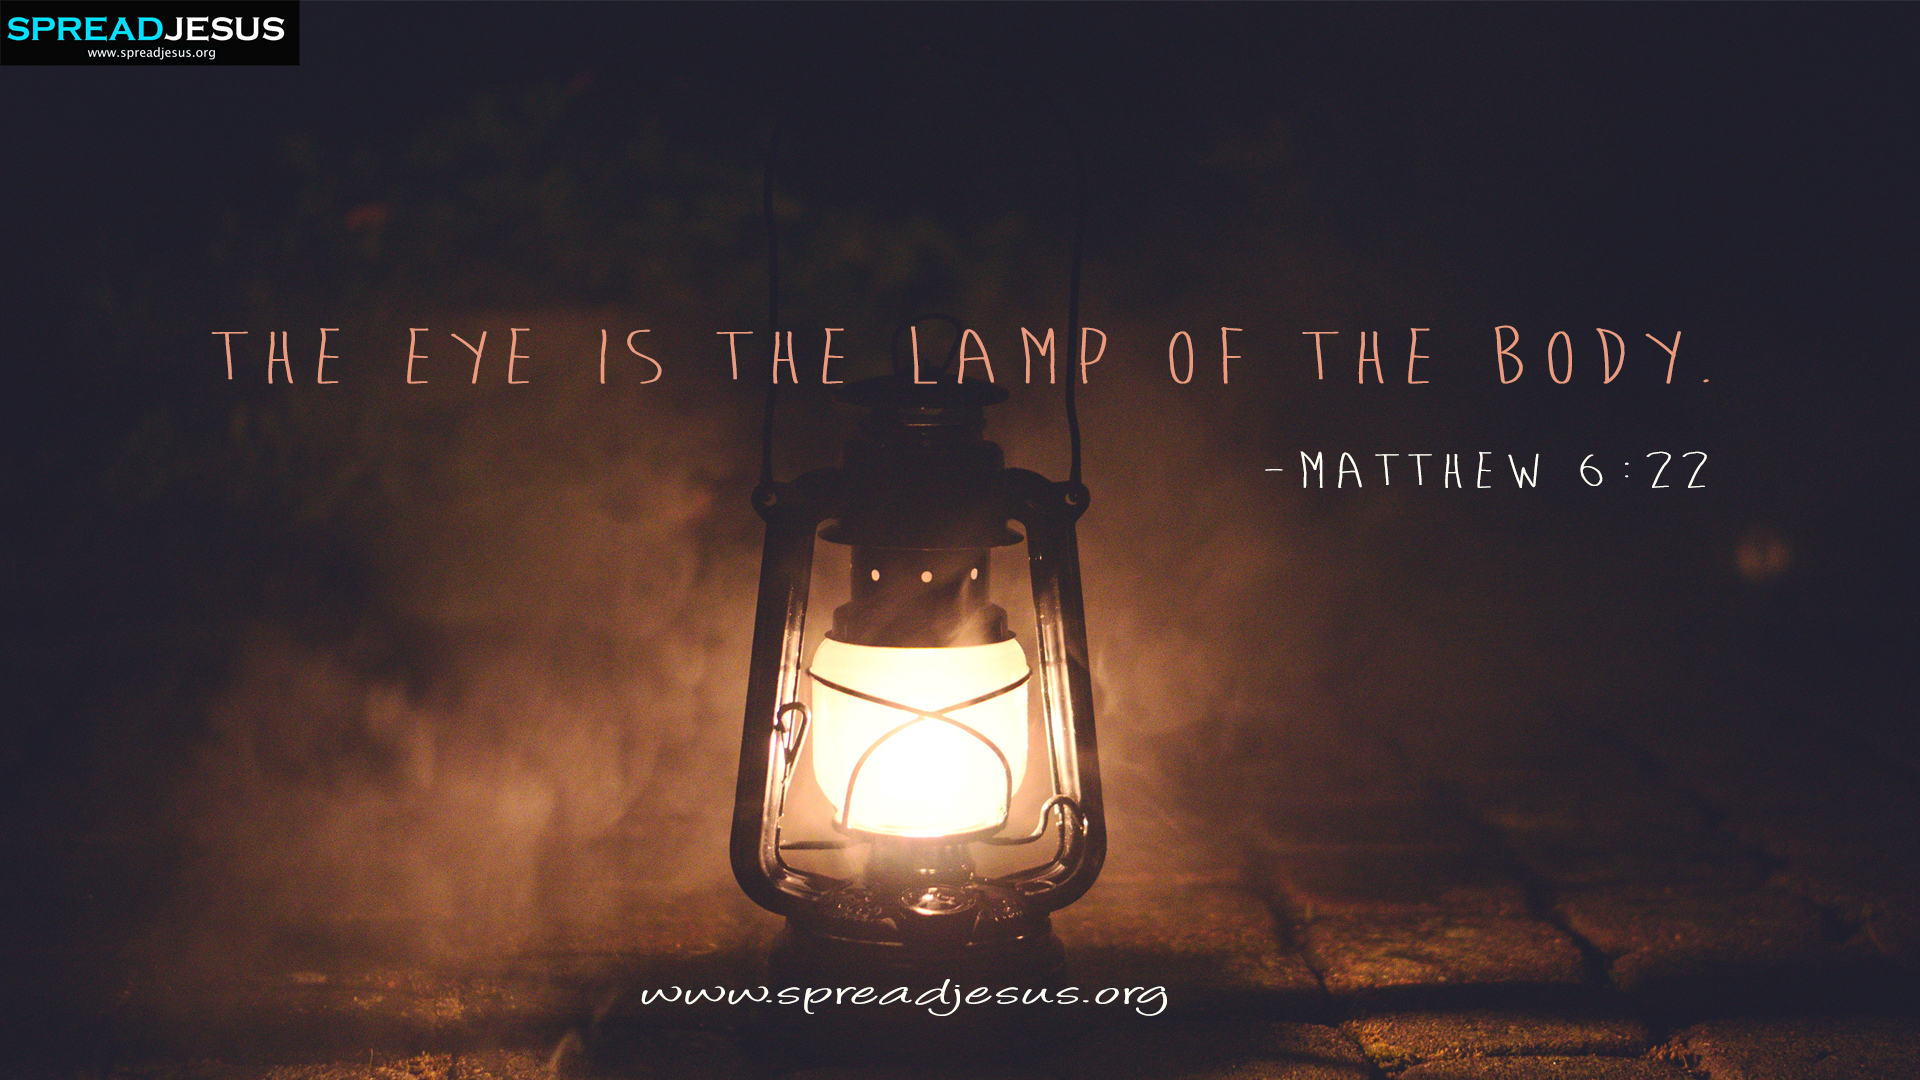 Matthew 6 Bible Quotes Hd Wallpaper Bible Quotes Hd You Light The Path For Others 1920x1080 Download Hd Wallpaper Wallpapertip